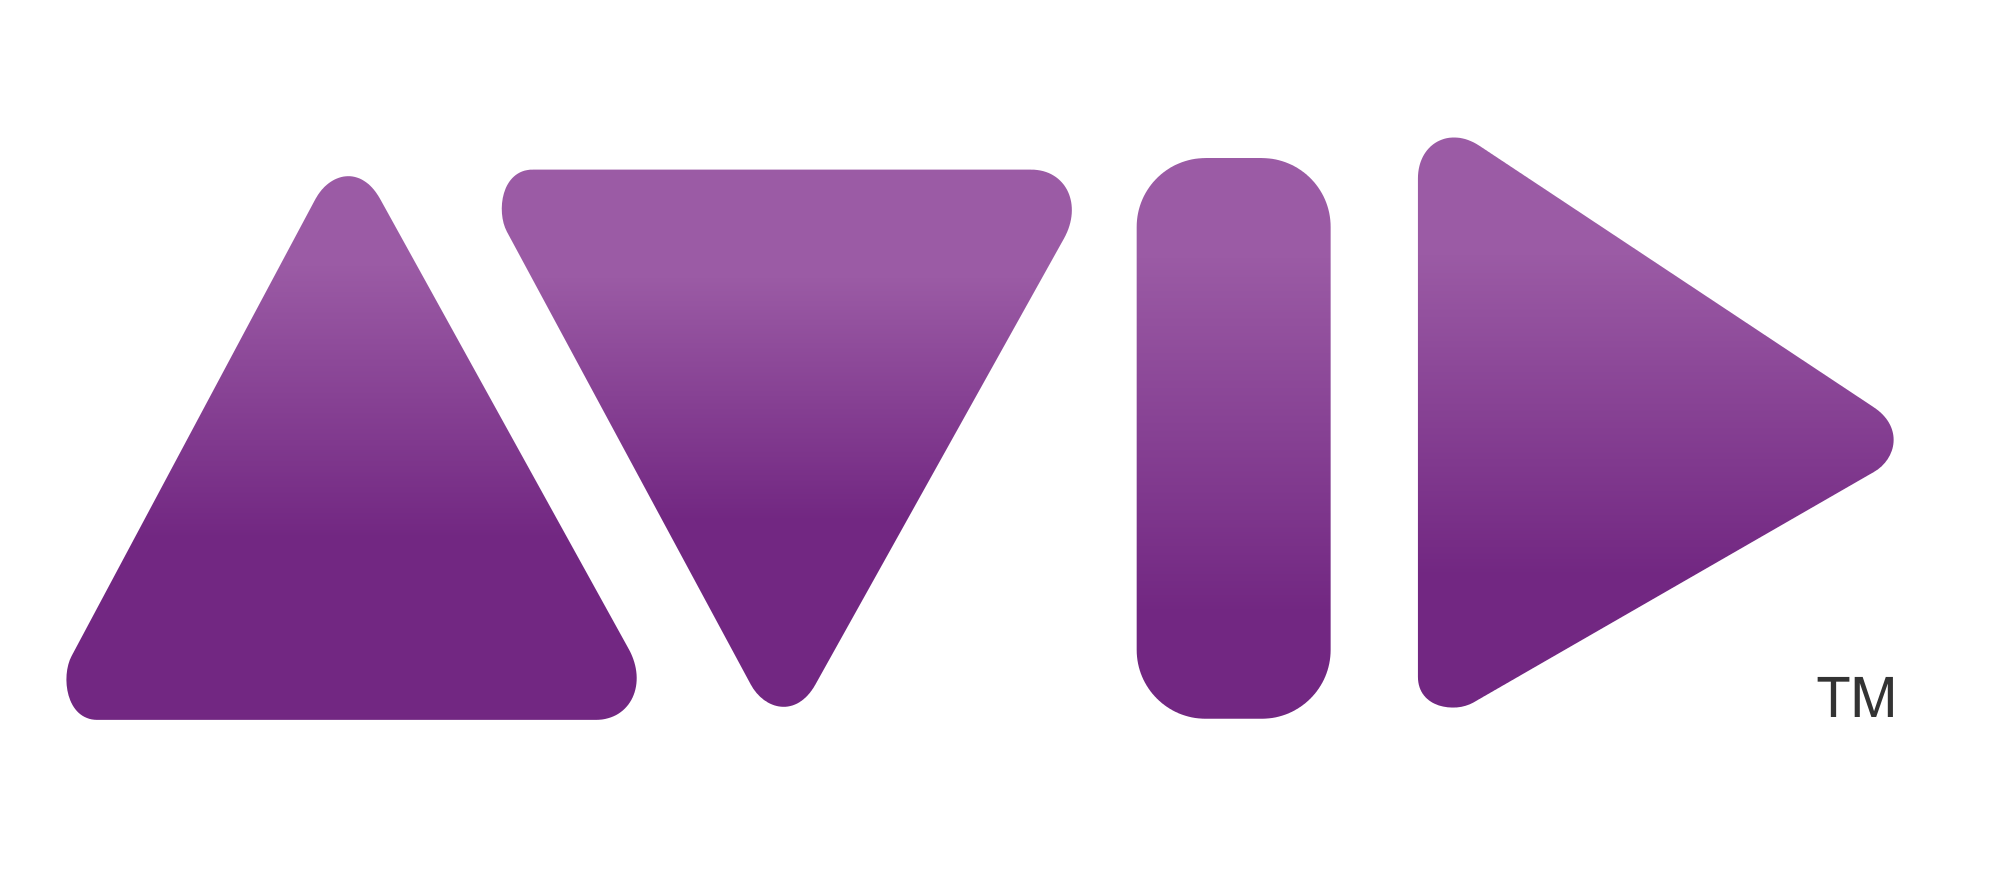 Pro tools logo png. Broadfield avid helps new